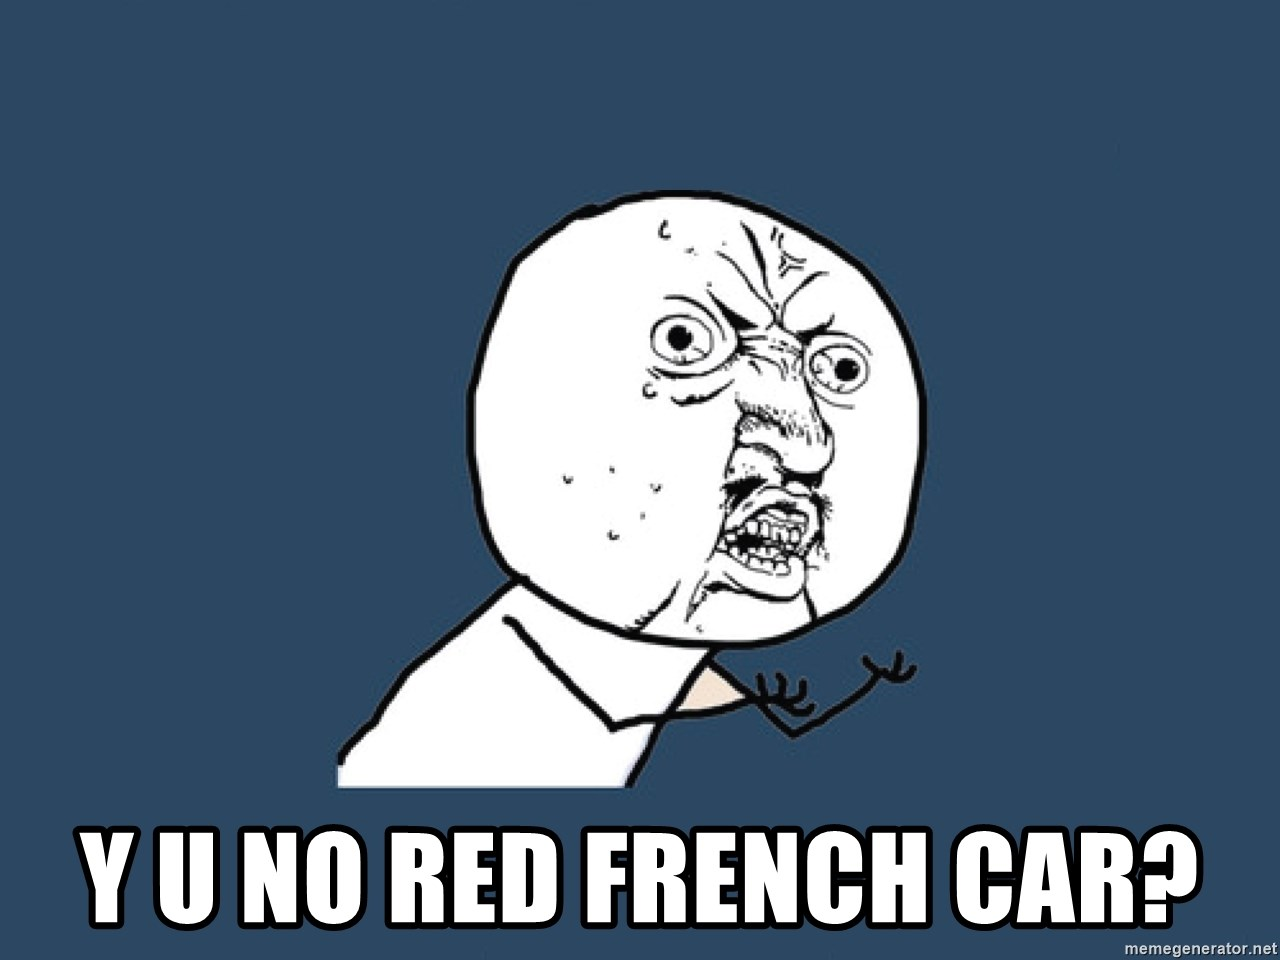 Y U No -  y u no red french car?